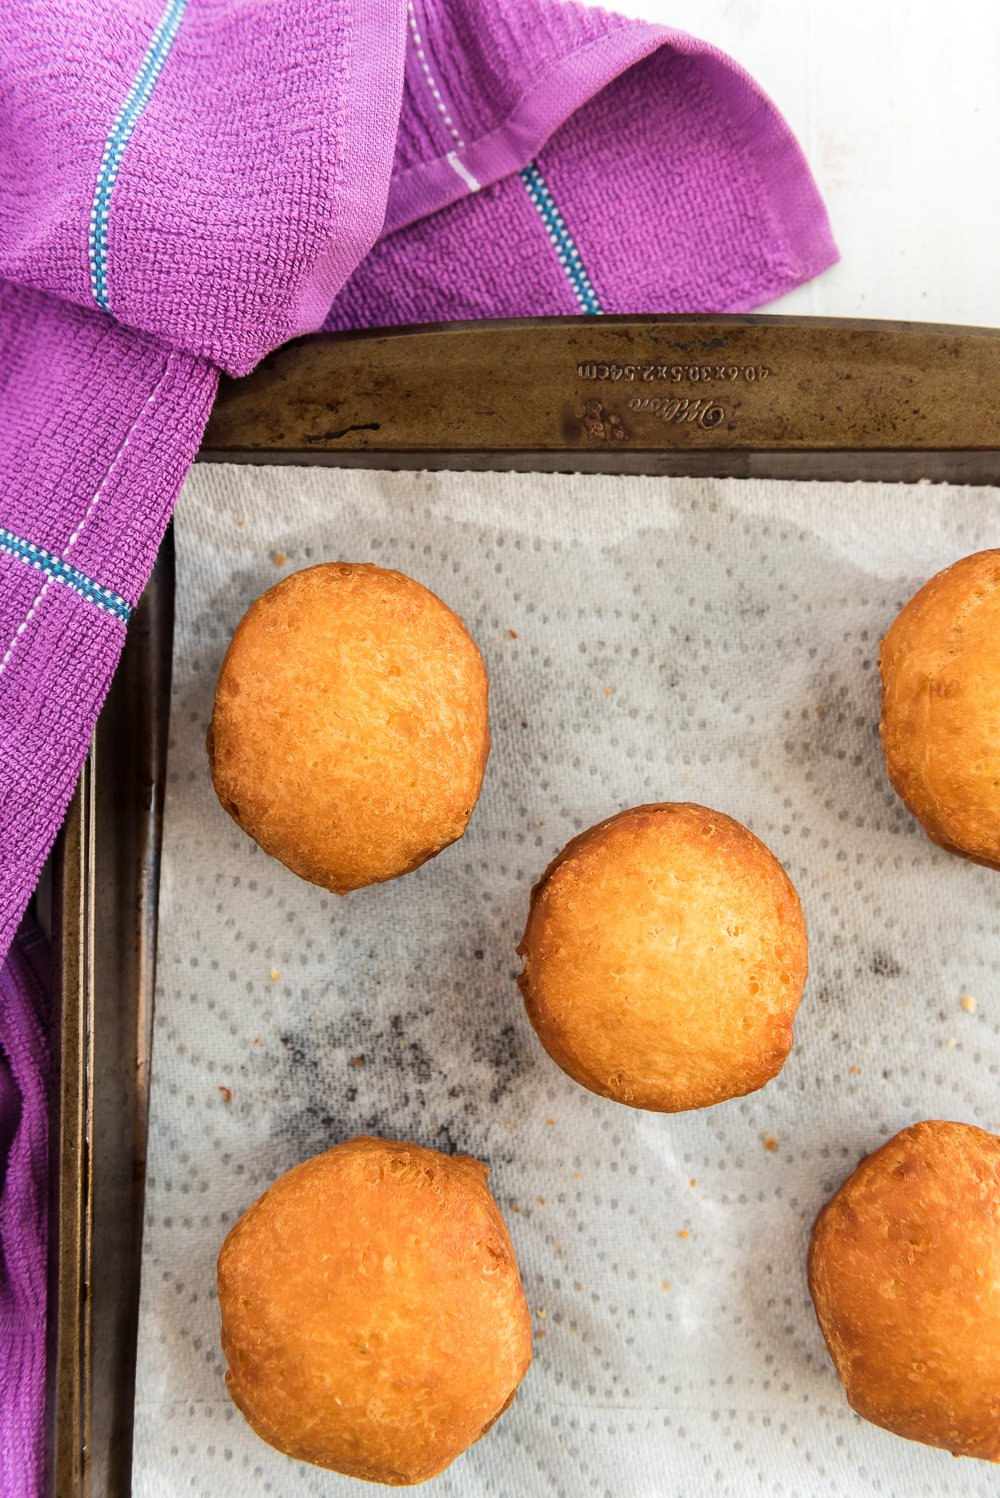 Fried donuts on a paper towel-lined baking sheet with purple napkin.